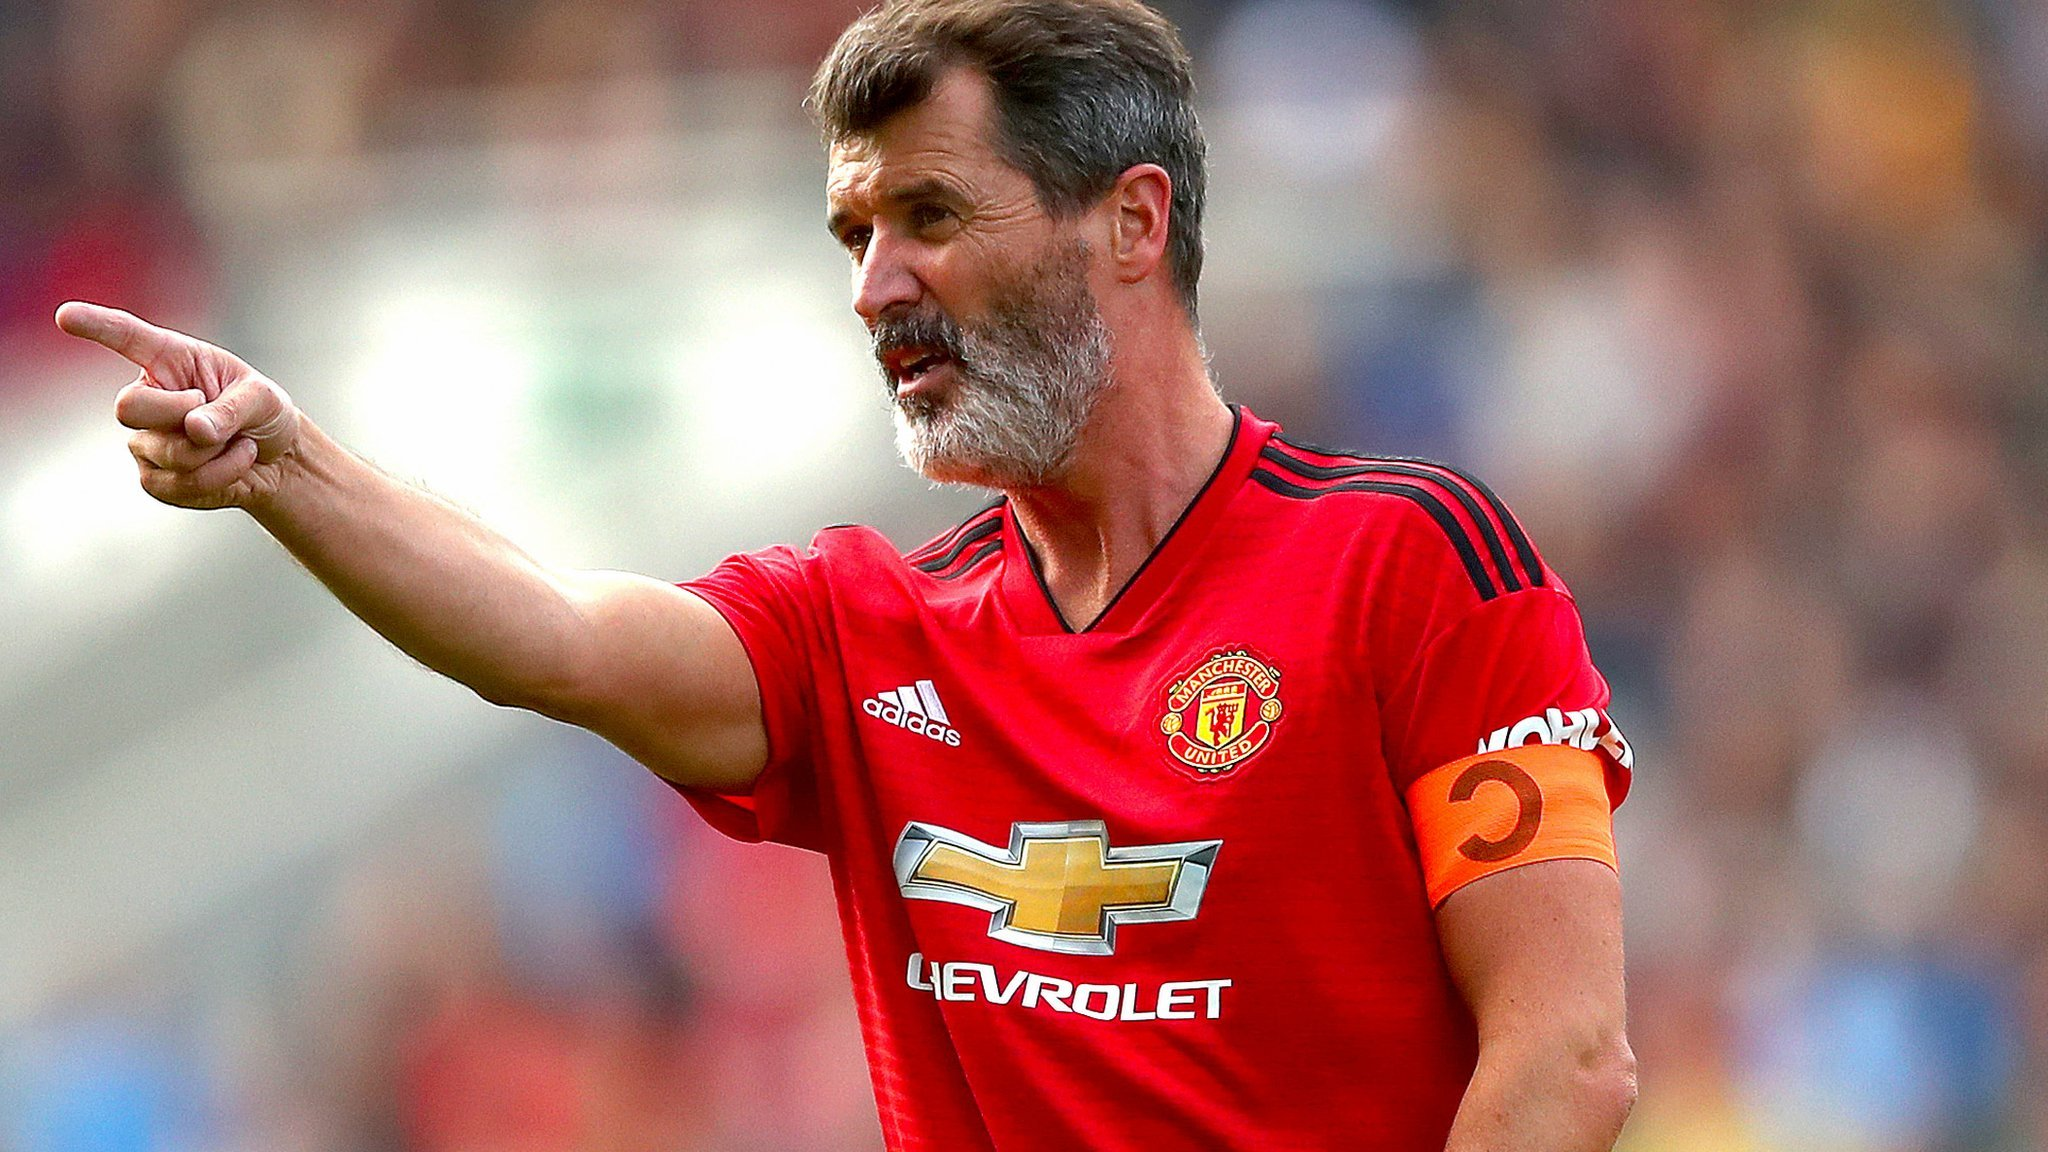 Keane leads Man Utd to win in Liam Miller tribute game